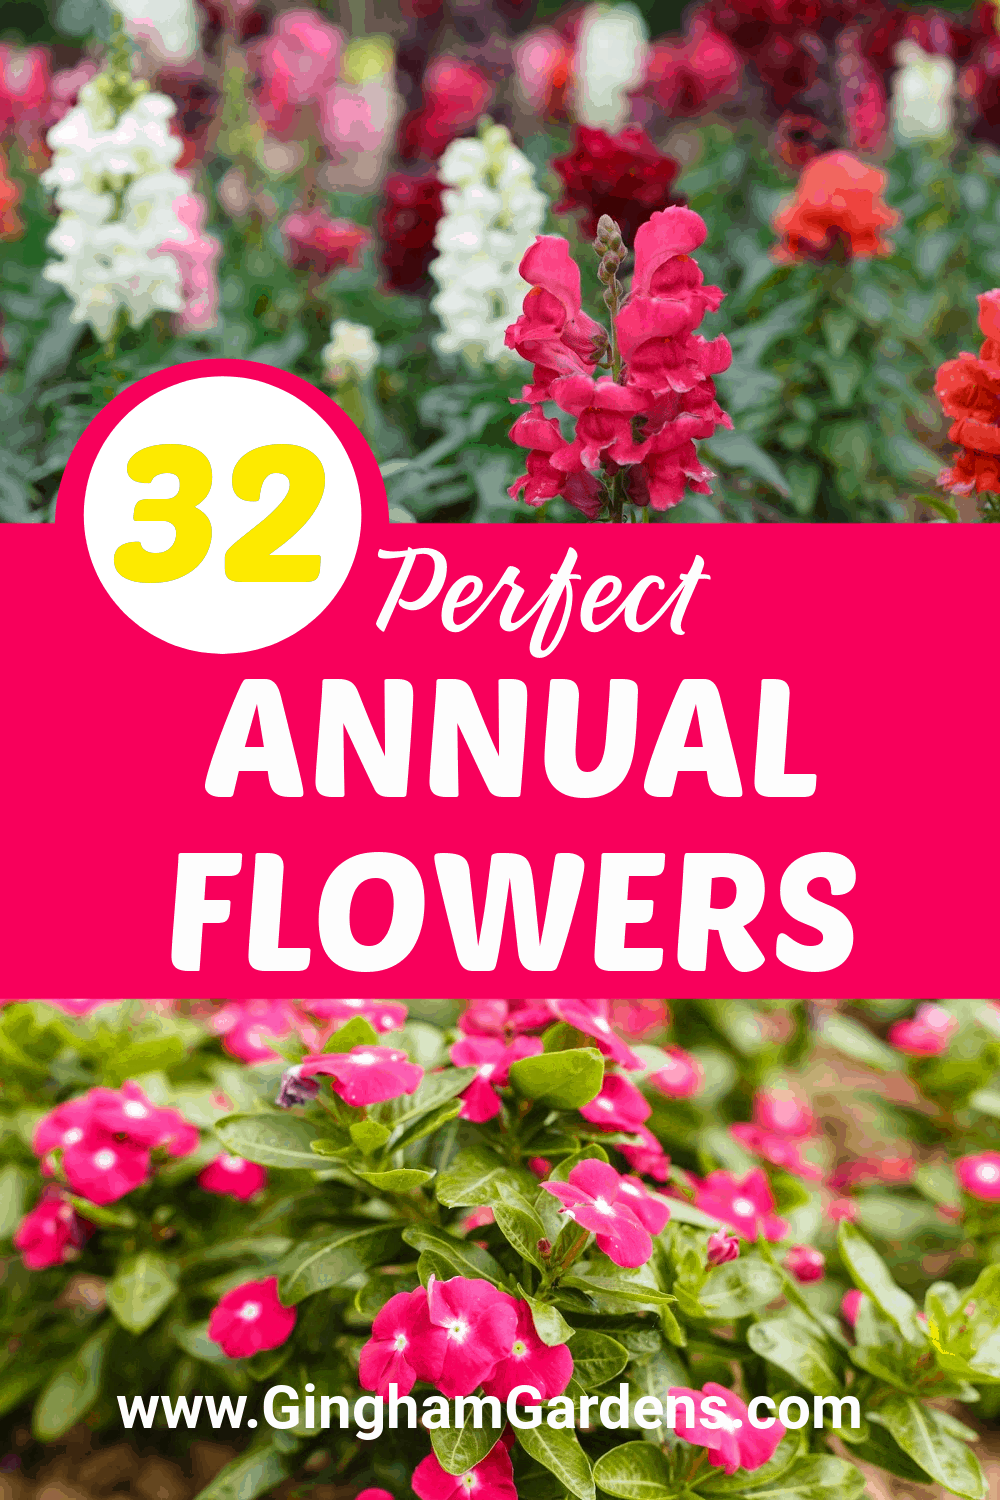 Image of Flowers with Text Overlay - 32 Perfect Annual Flowers